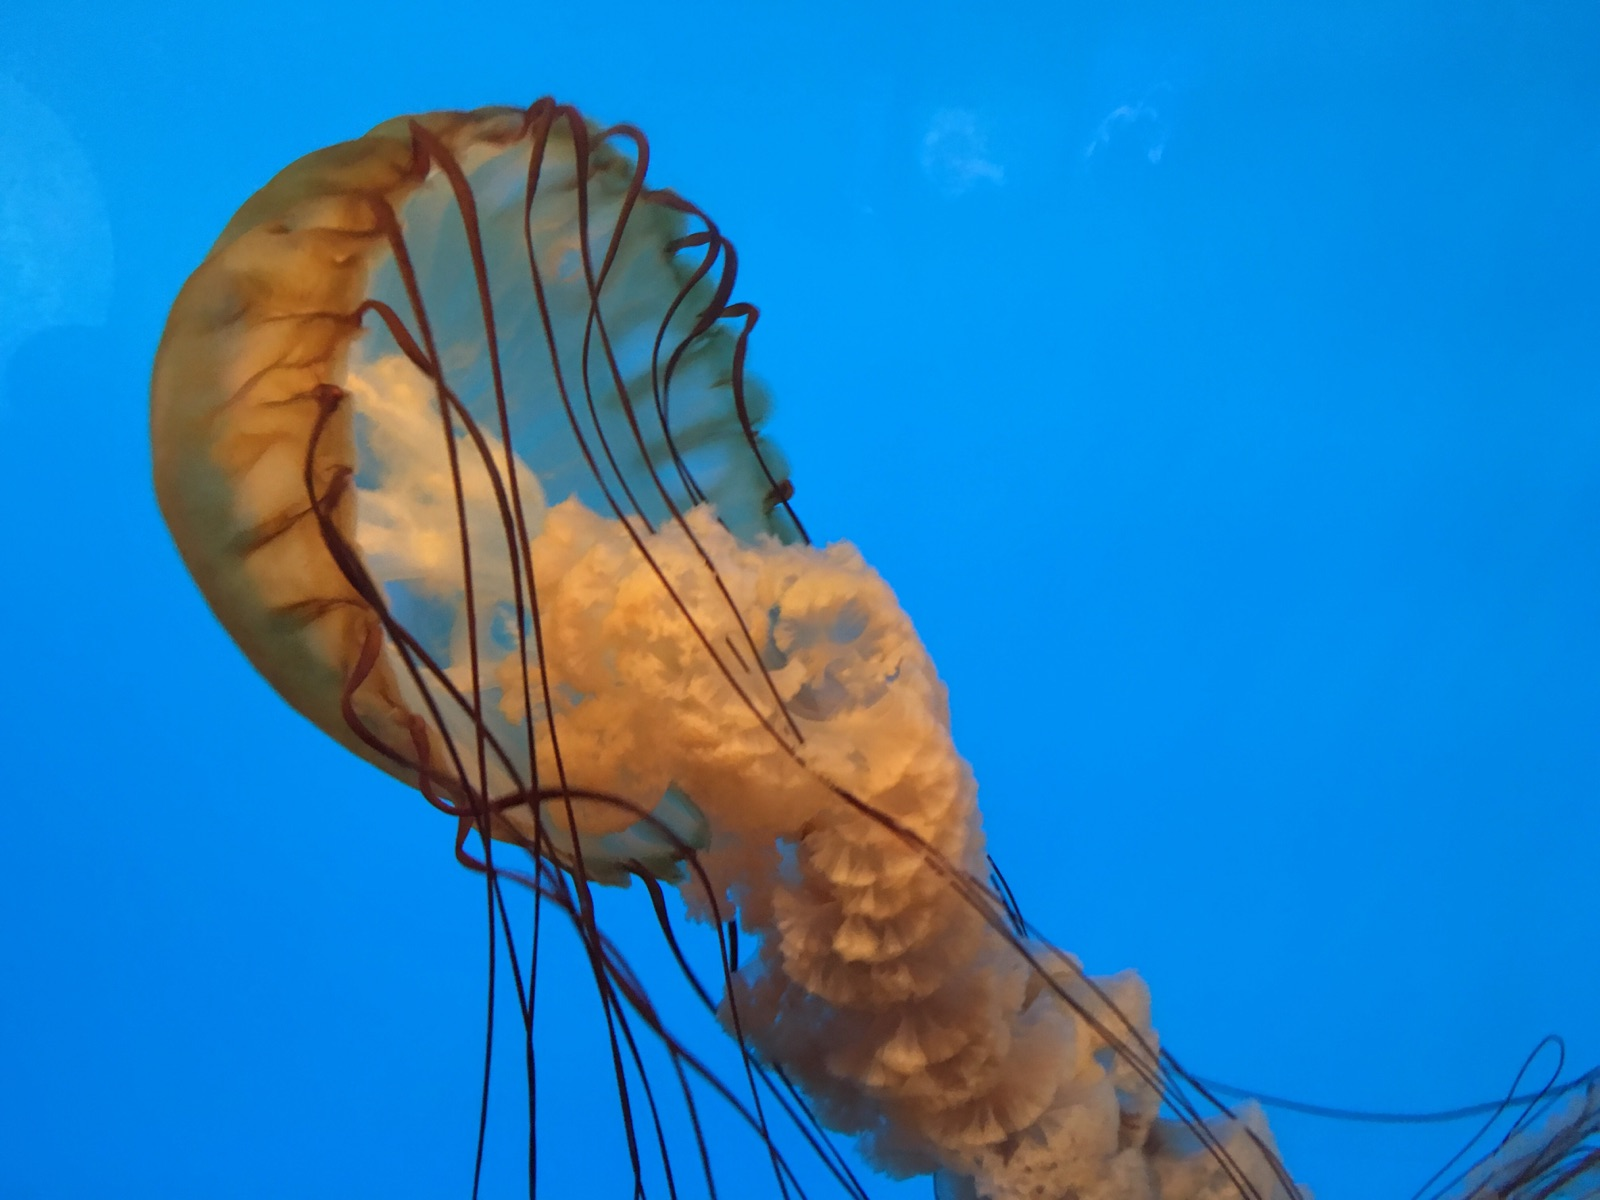 All kinds of jellyfish